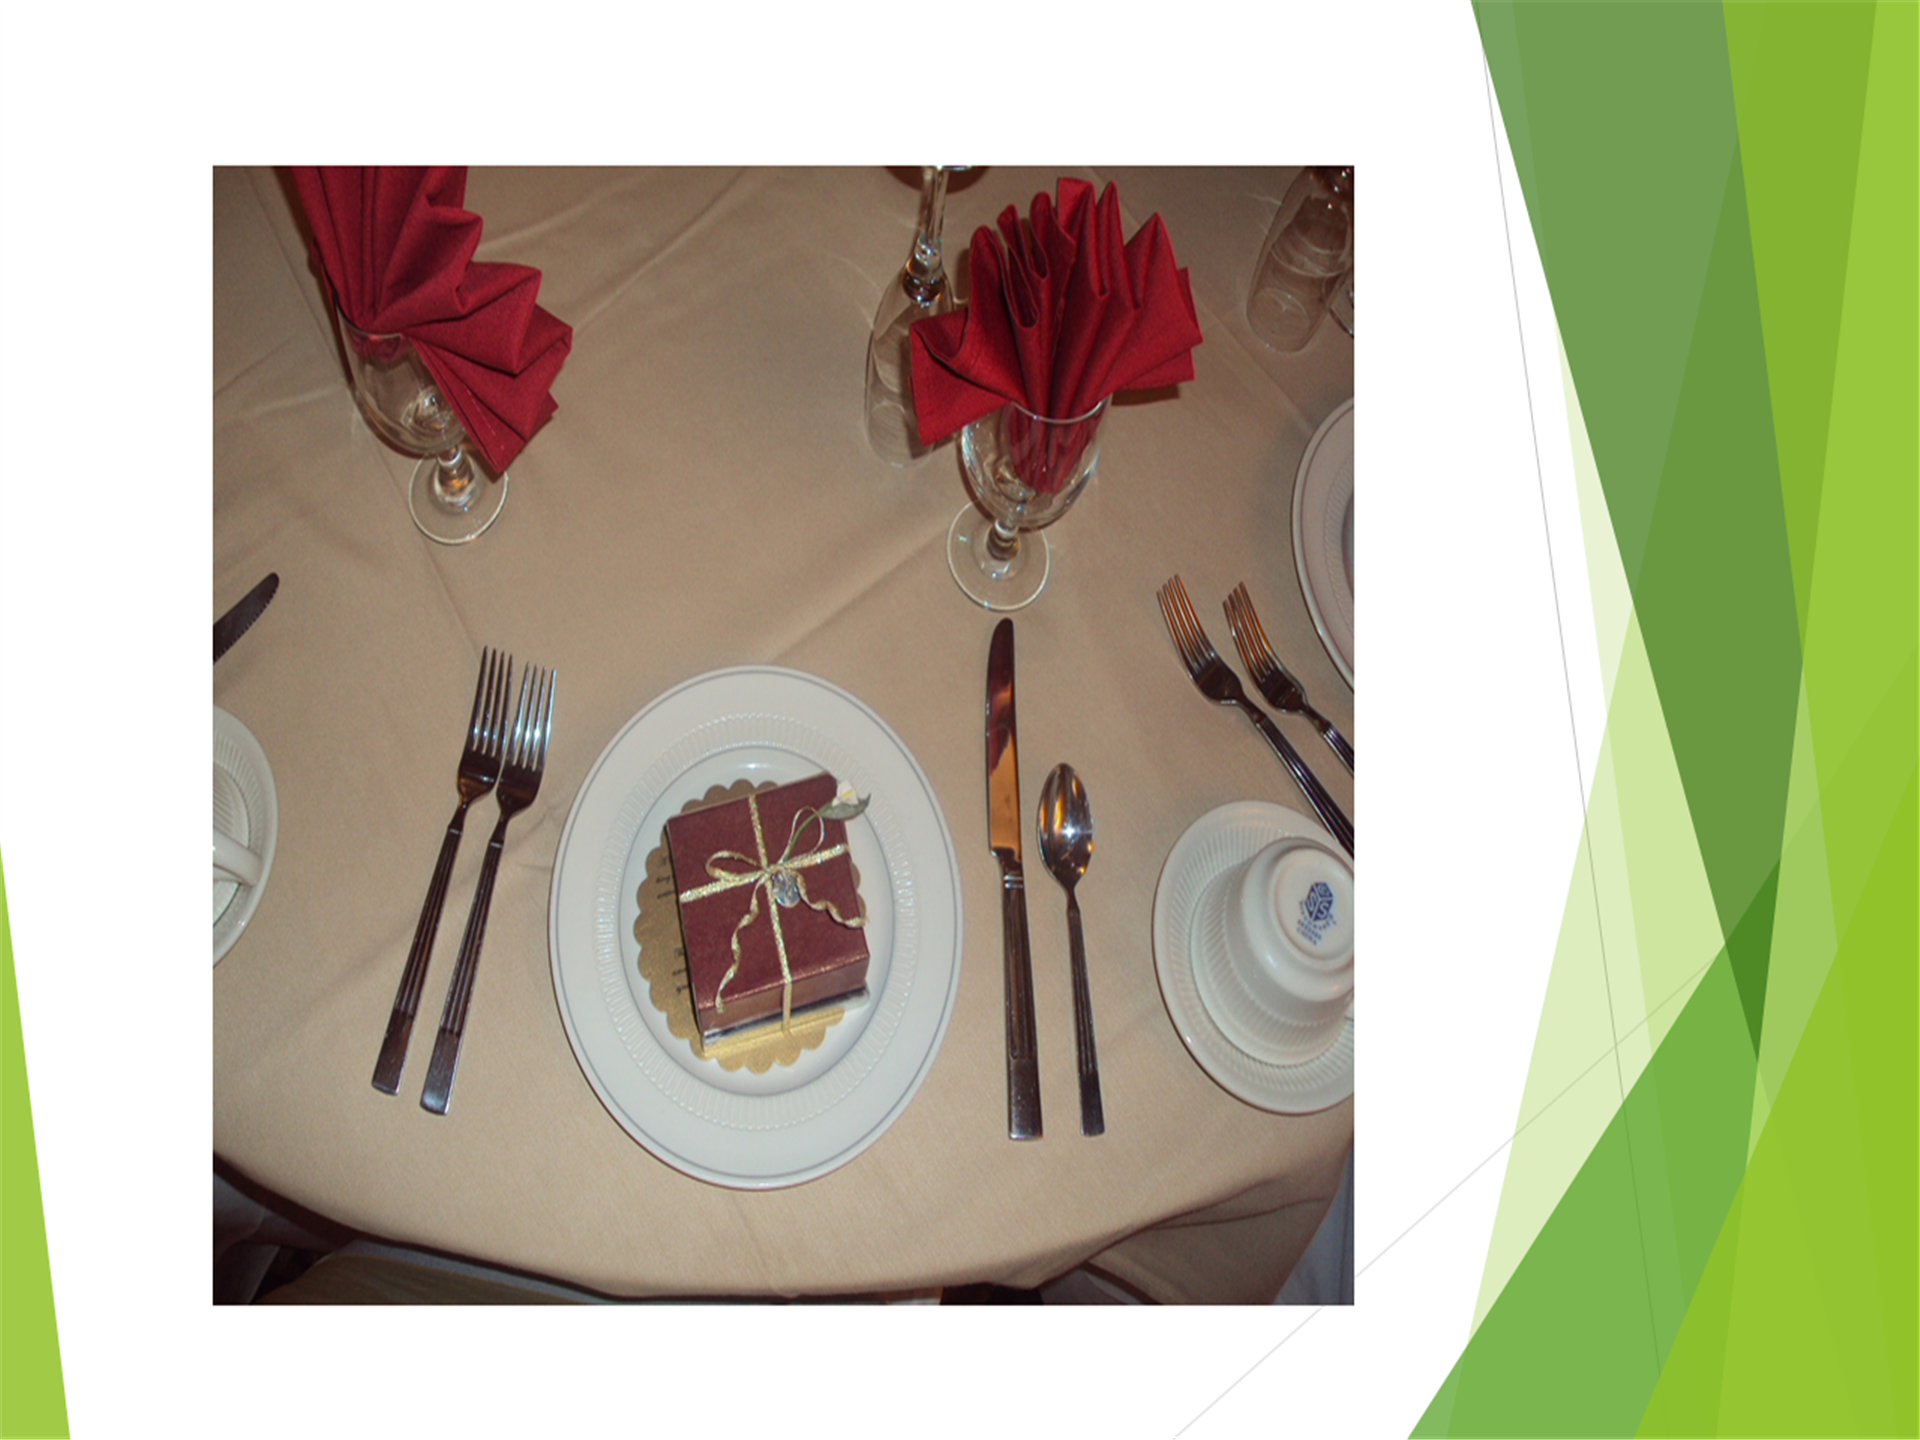 table setting with plate, silverware, water glass, napkin and party favor.